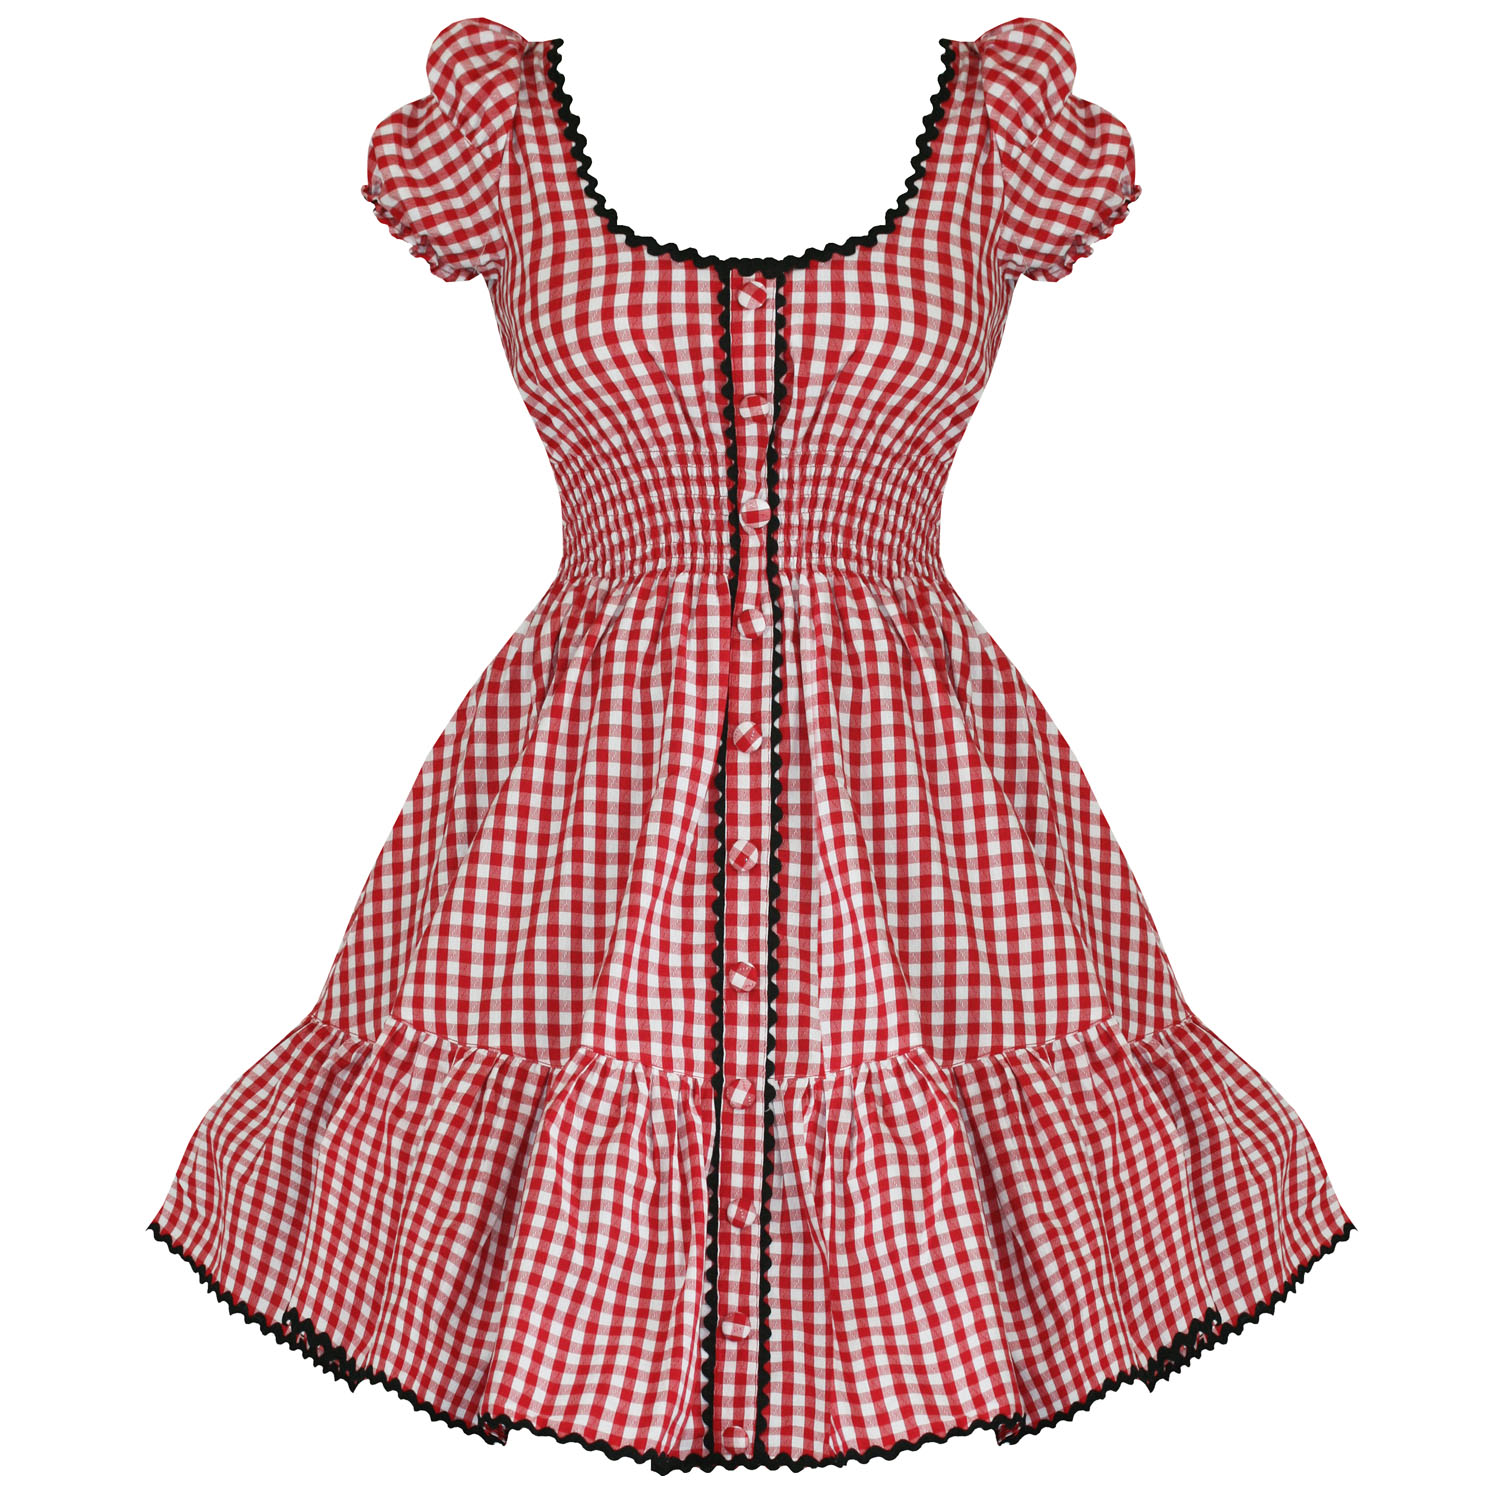 HELL BUNNY MAUDE LADIES NEW RED GINGHAM LOLITA 50S VTG ROCKABILLY ...